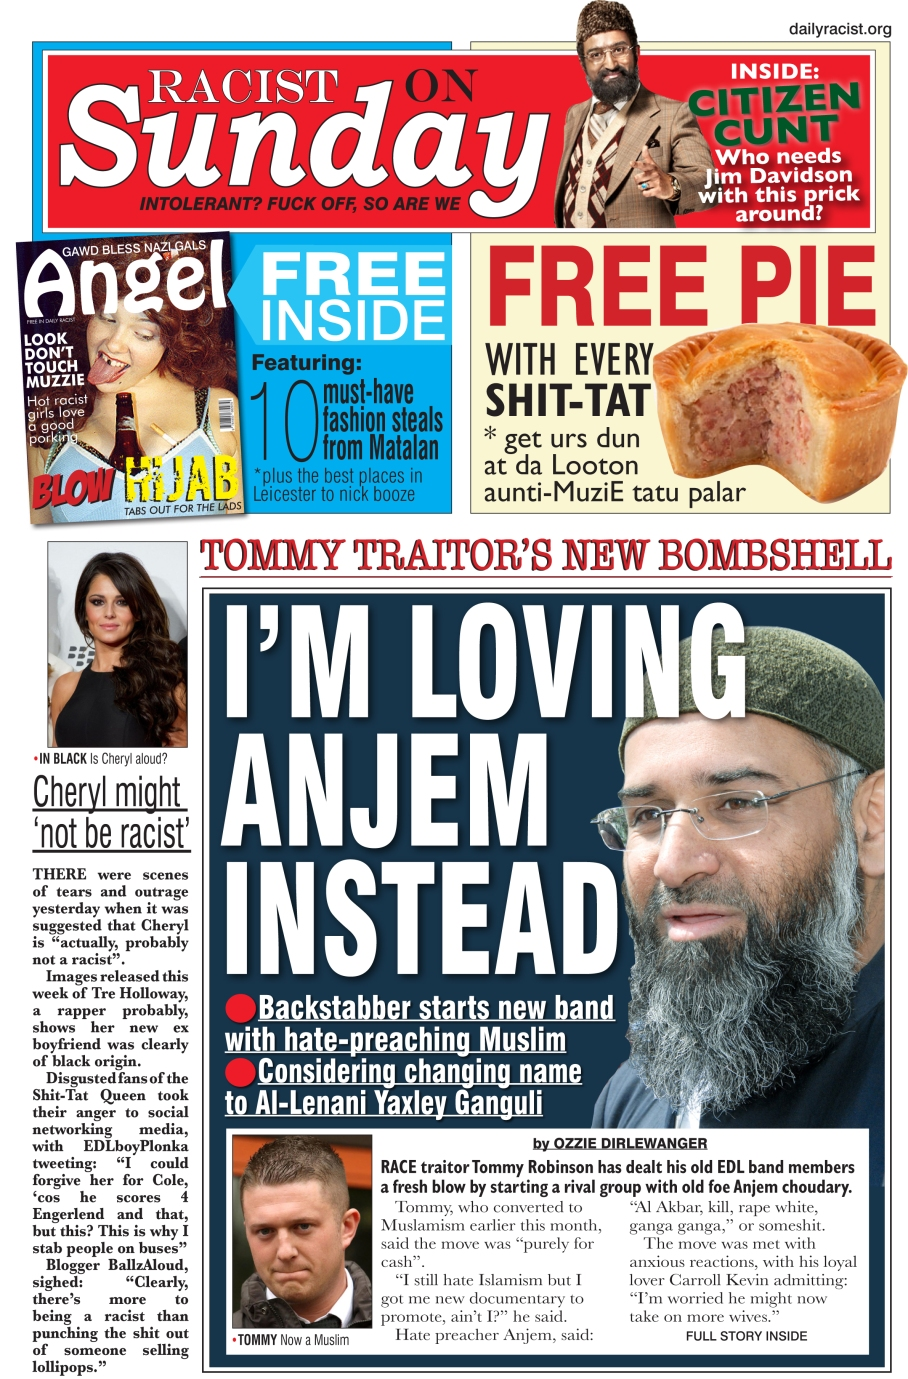 Tommy and Anjem's new band